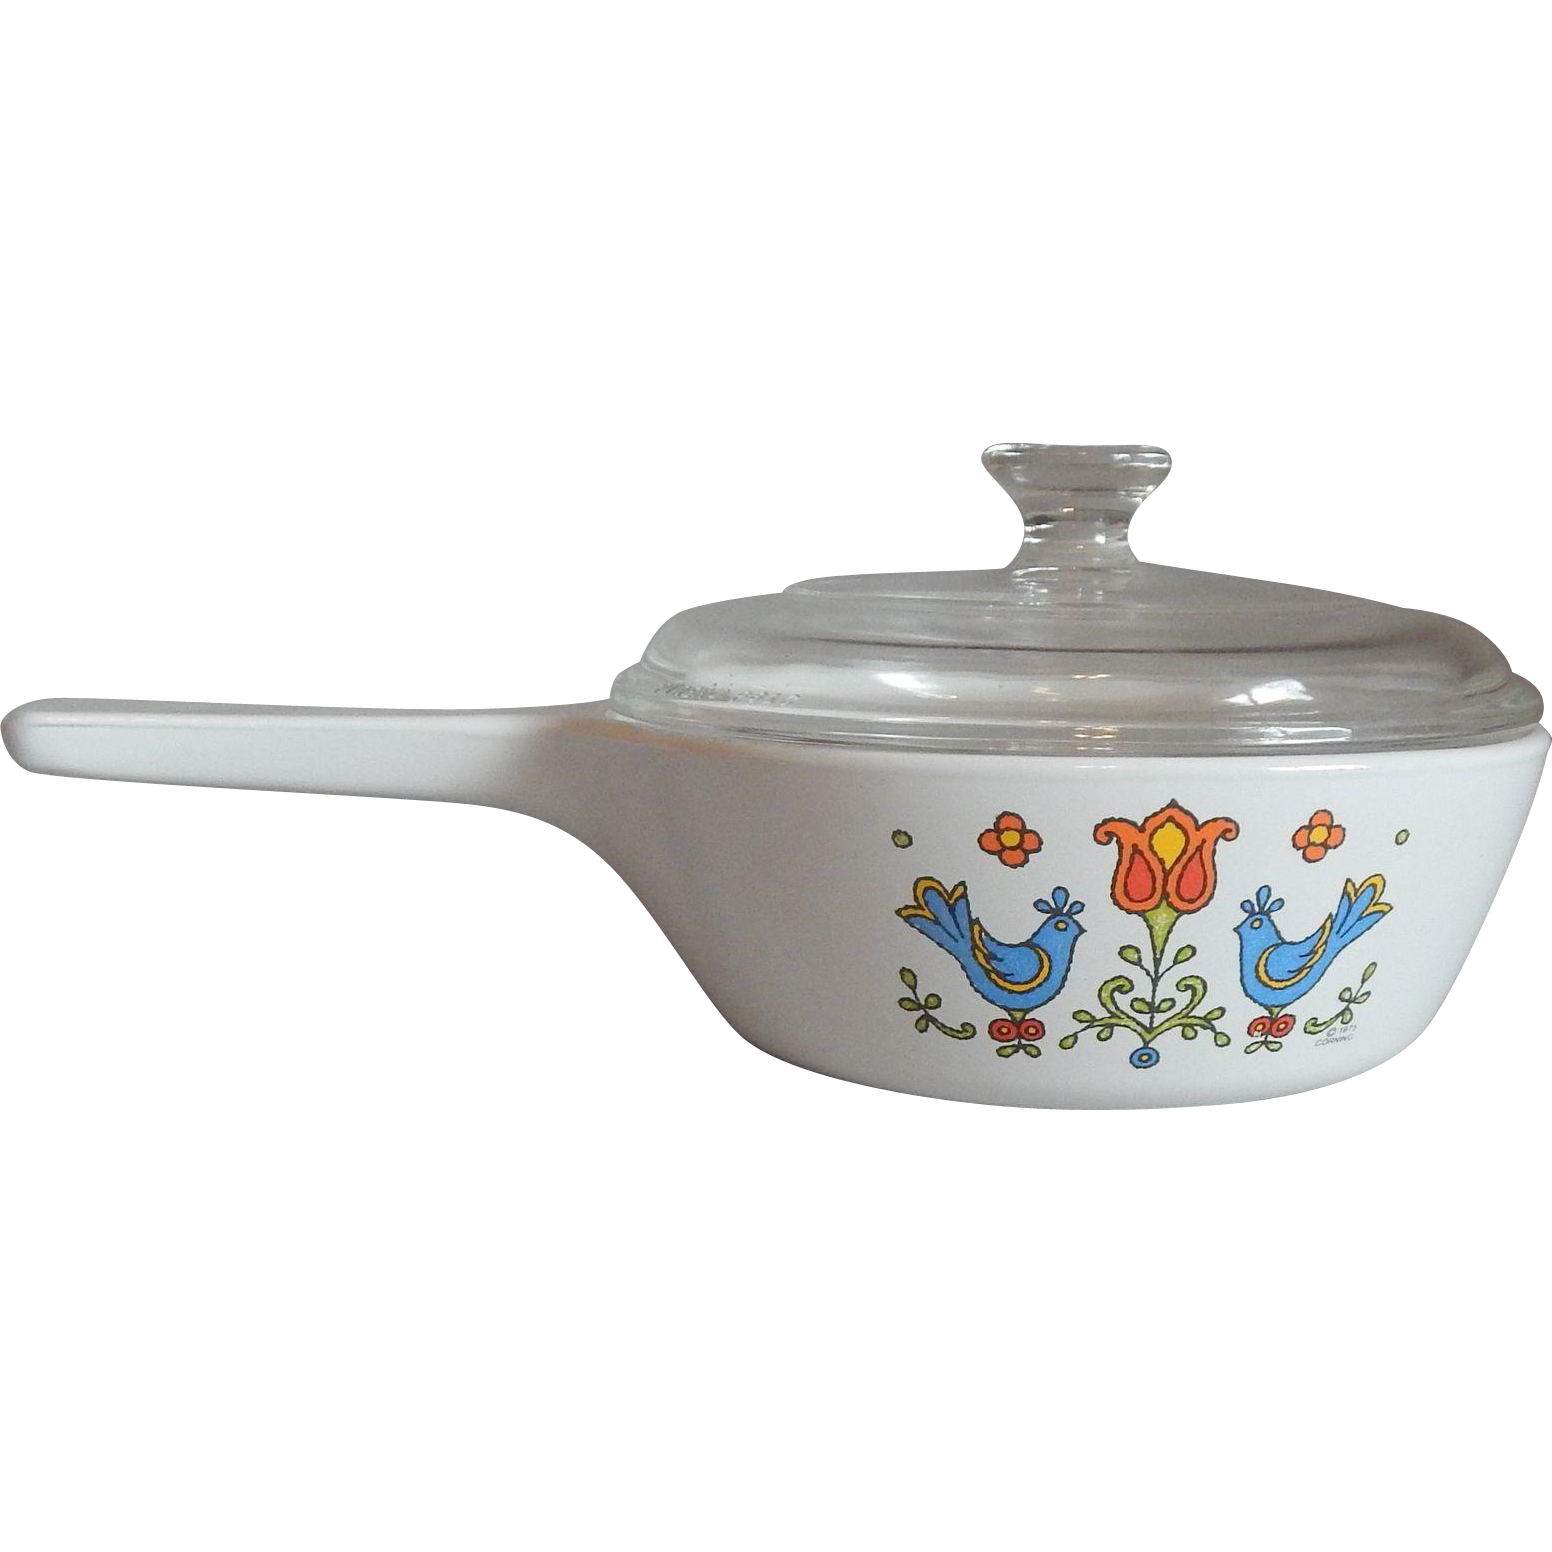 Corning Ware Country Festival Saucepant